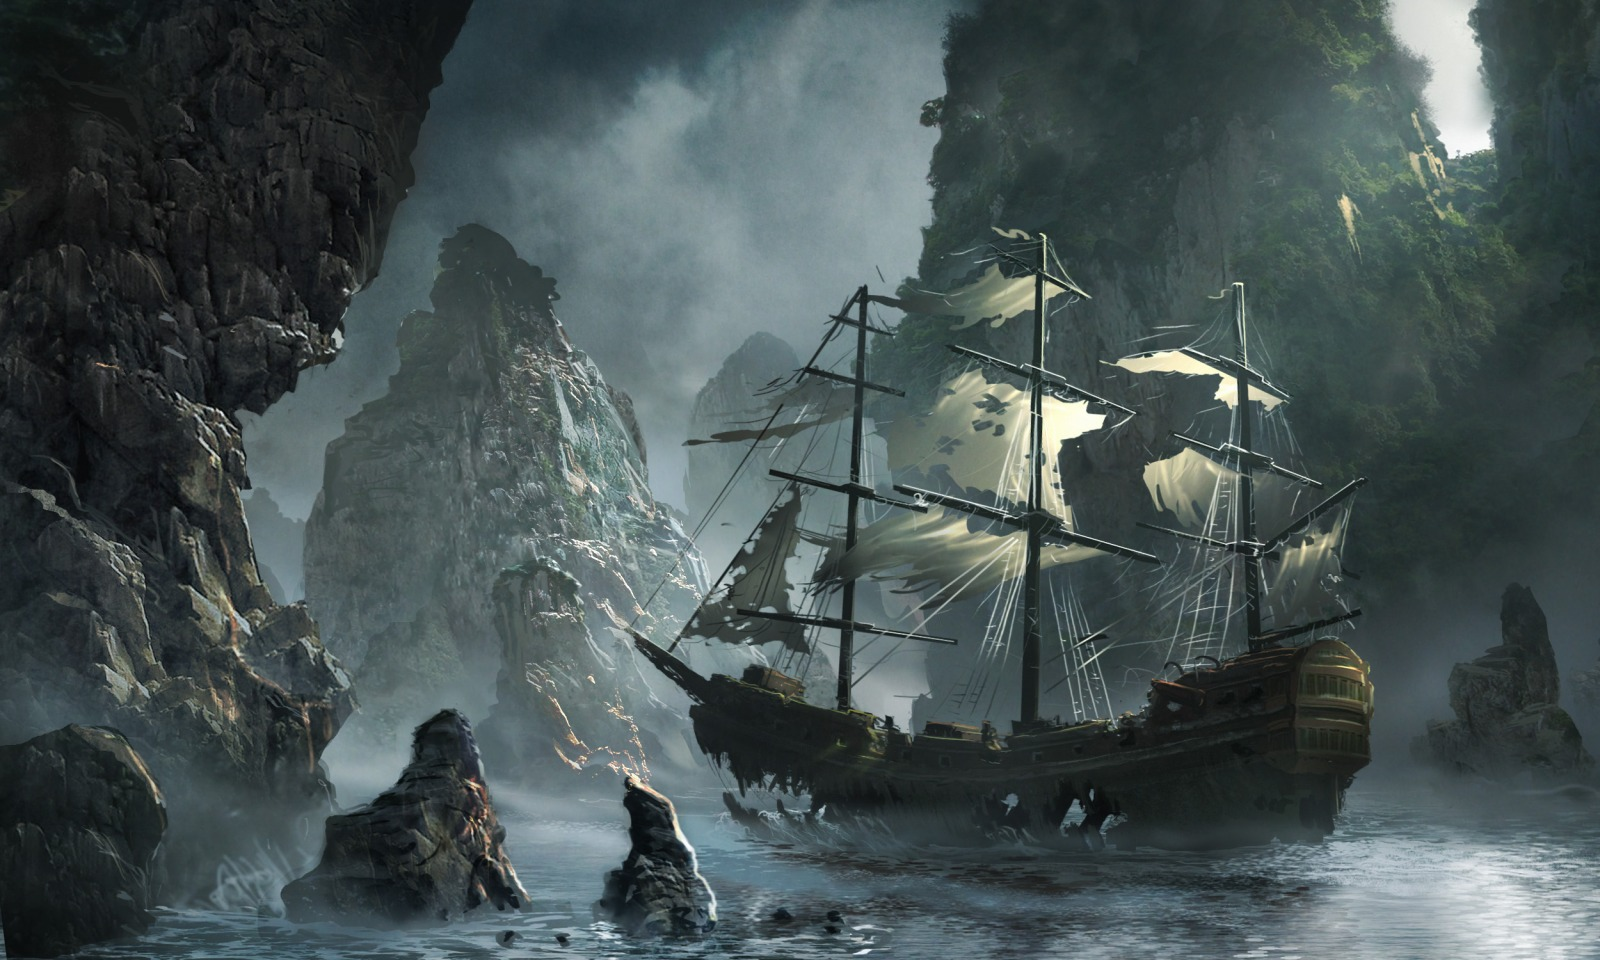 1444491594-1600x960-14137-ghost-ship-approaching-2d-fantasy-illustration-pirate-ship-landscape-picture-image-digital-art.jpg